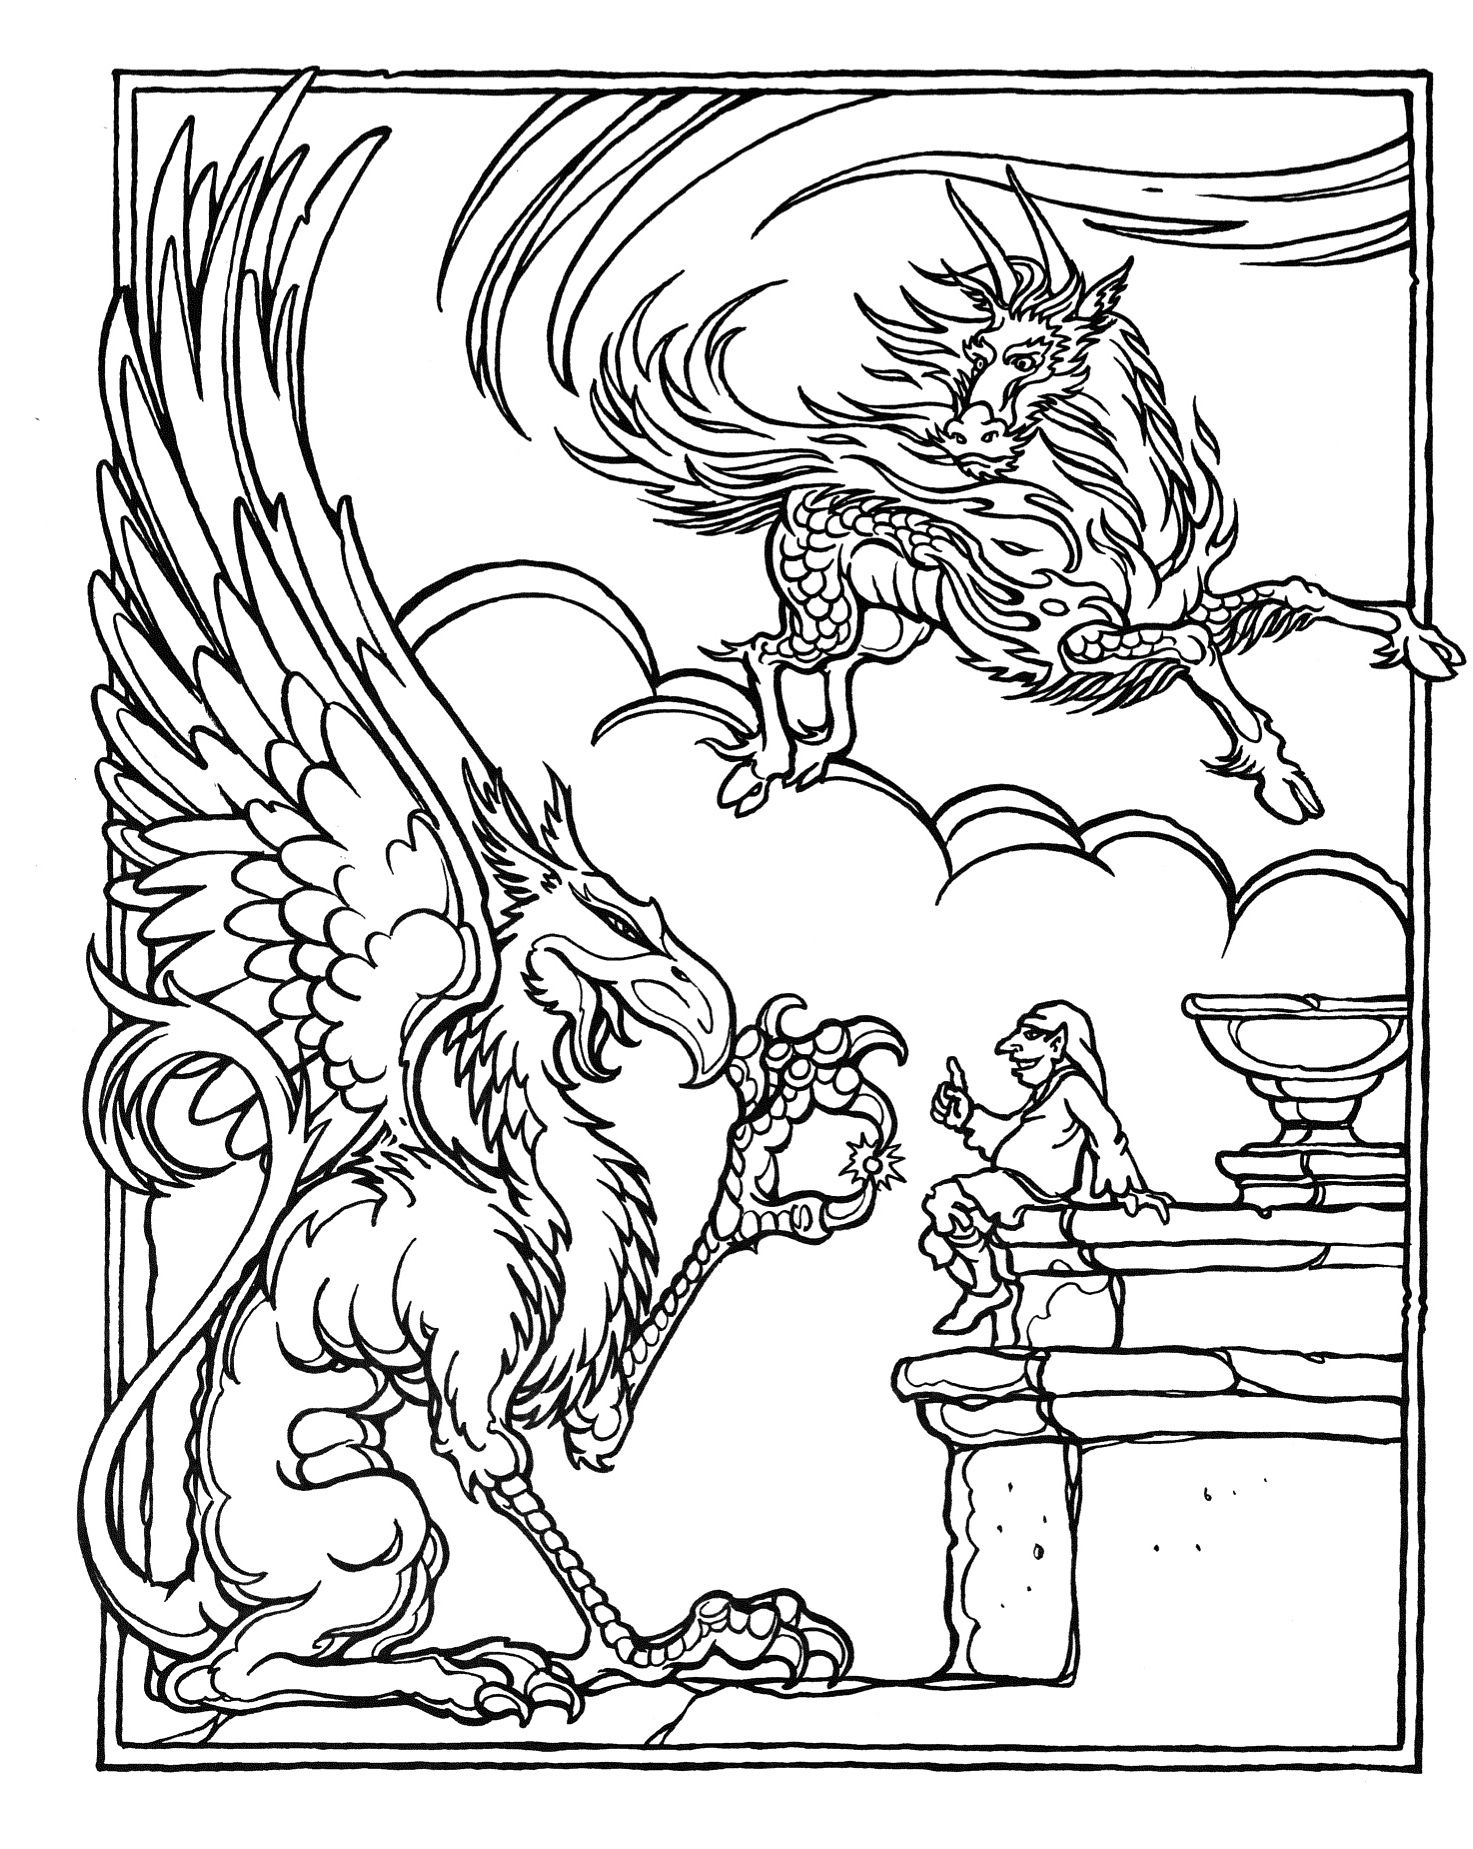 coloring pages with dragons - photo#23